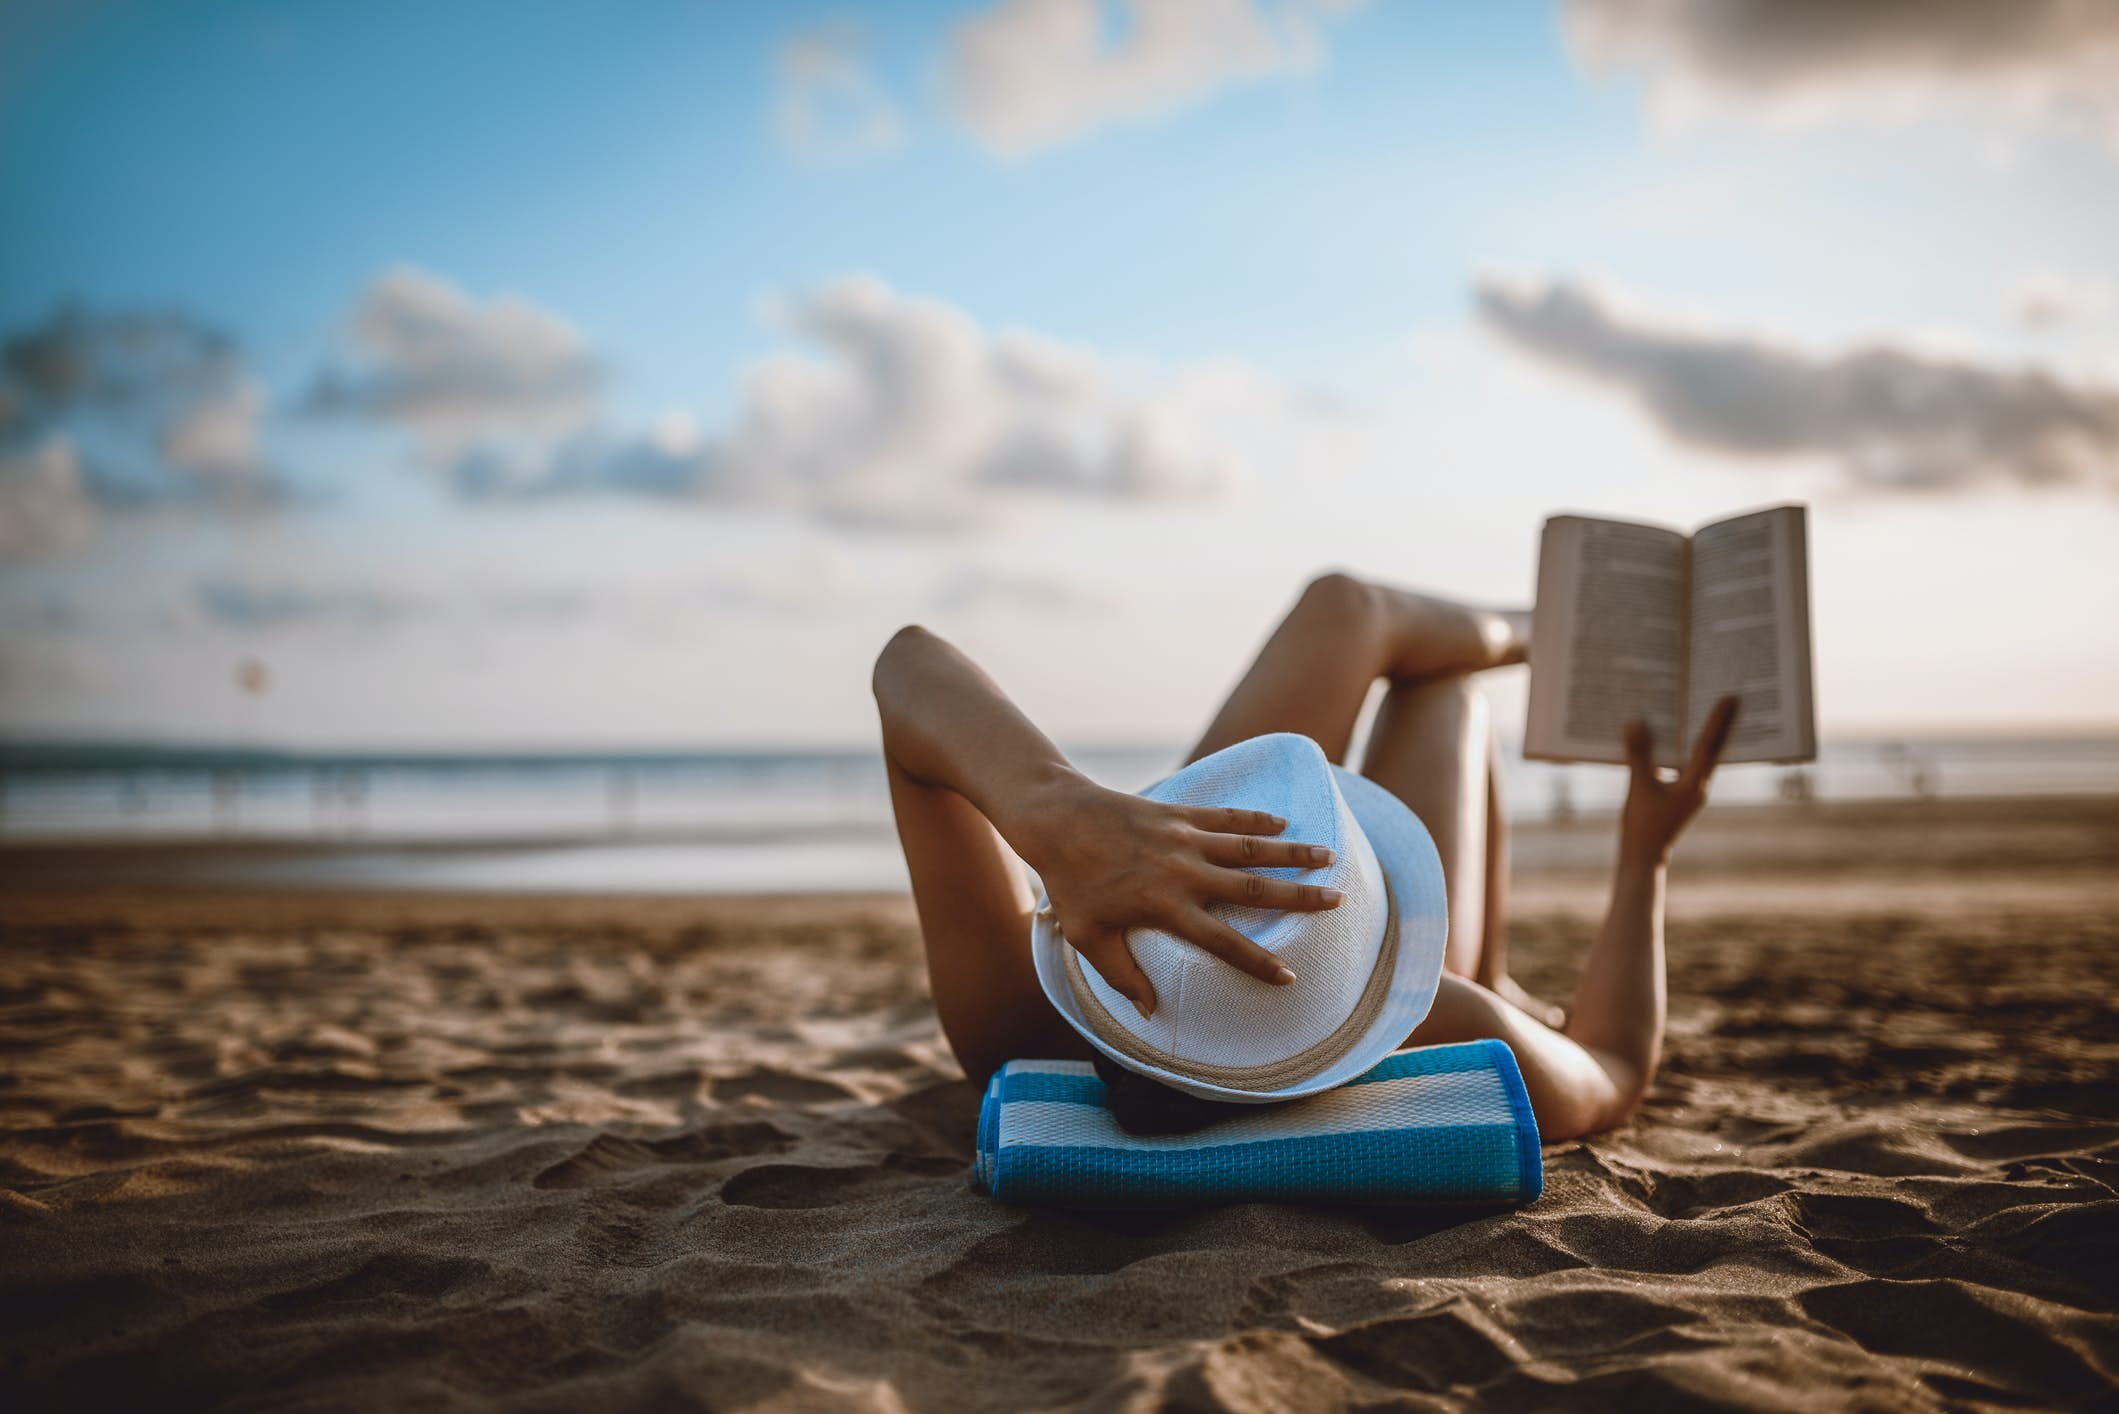 Female Solo Travel: 10 books to inspire wanderlust - Lonely Planet